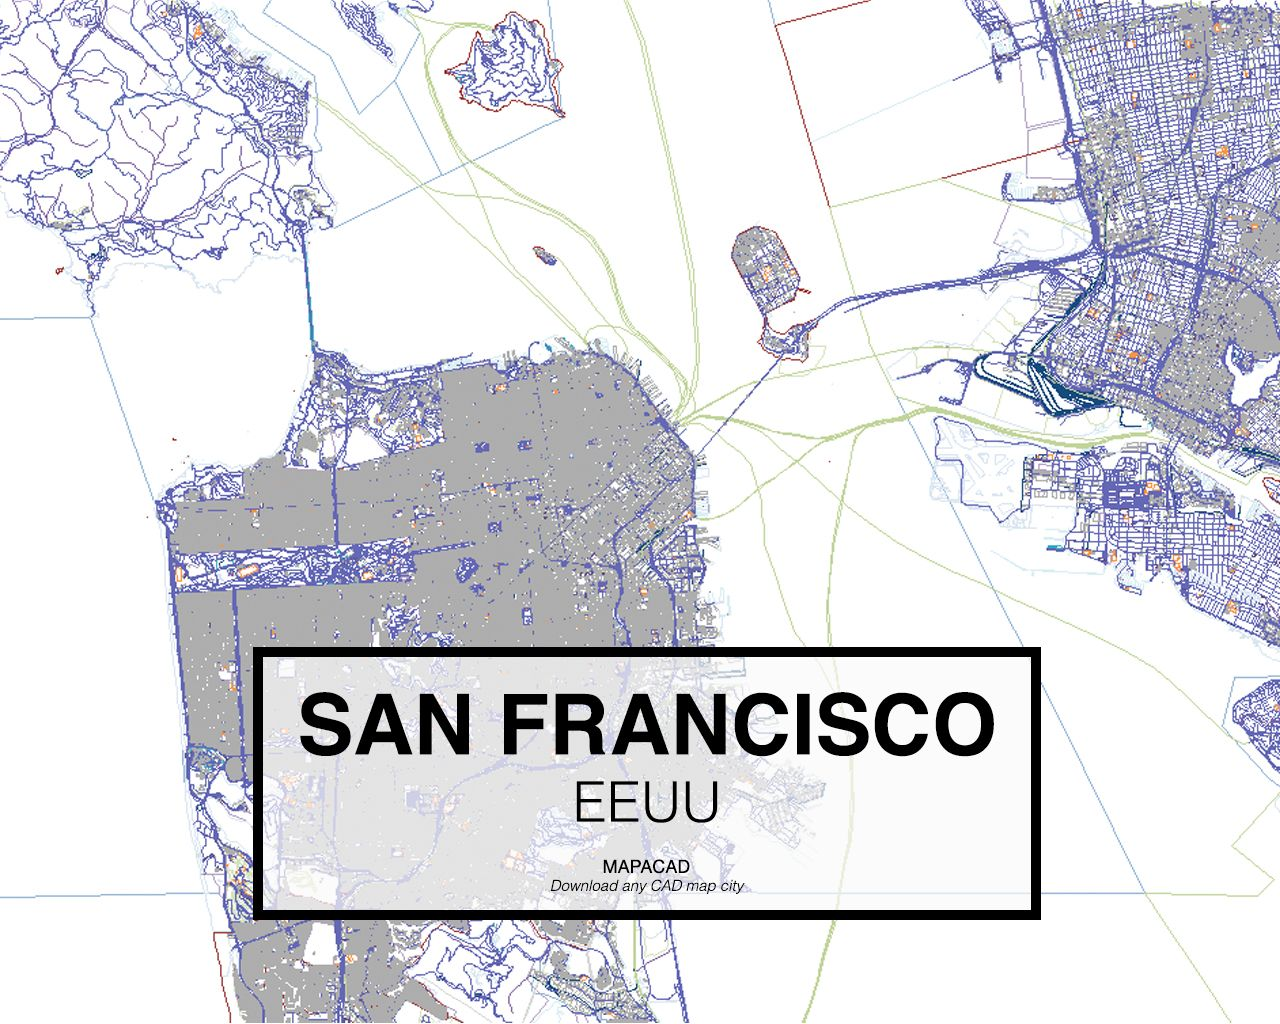 San francisco eeuu download cad map city in dwg ready to use in download cad map city in dwg ready to use in autocad gumiabroncs Gallery